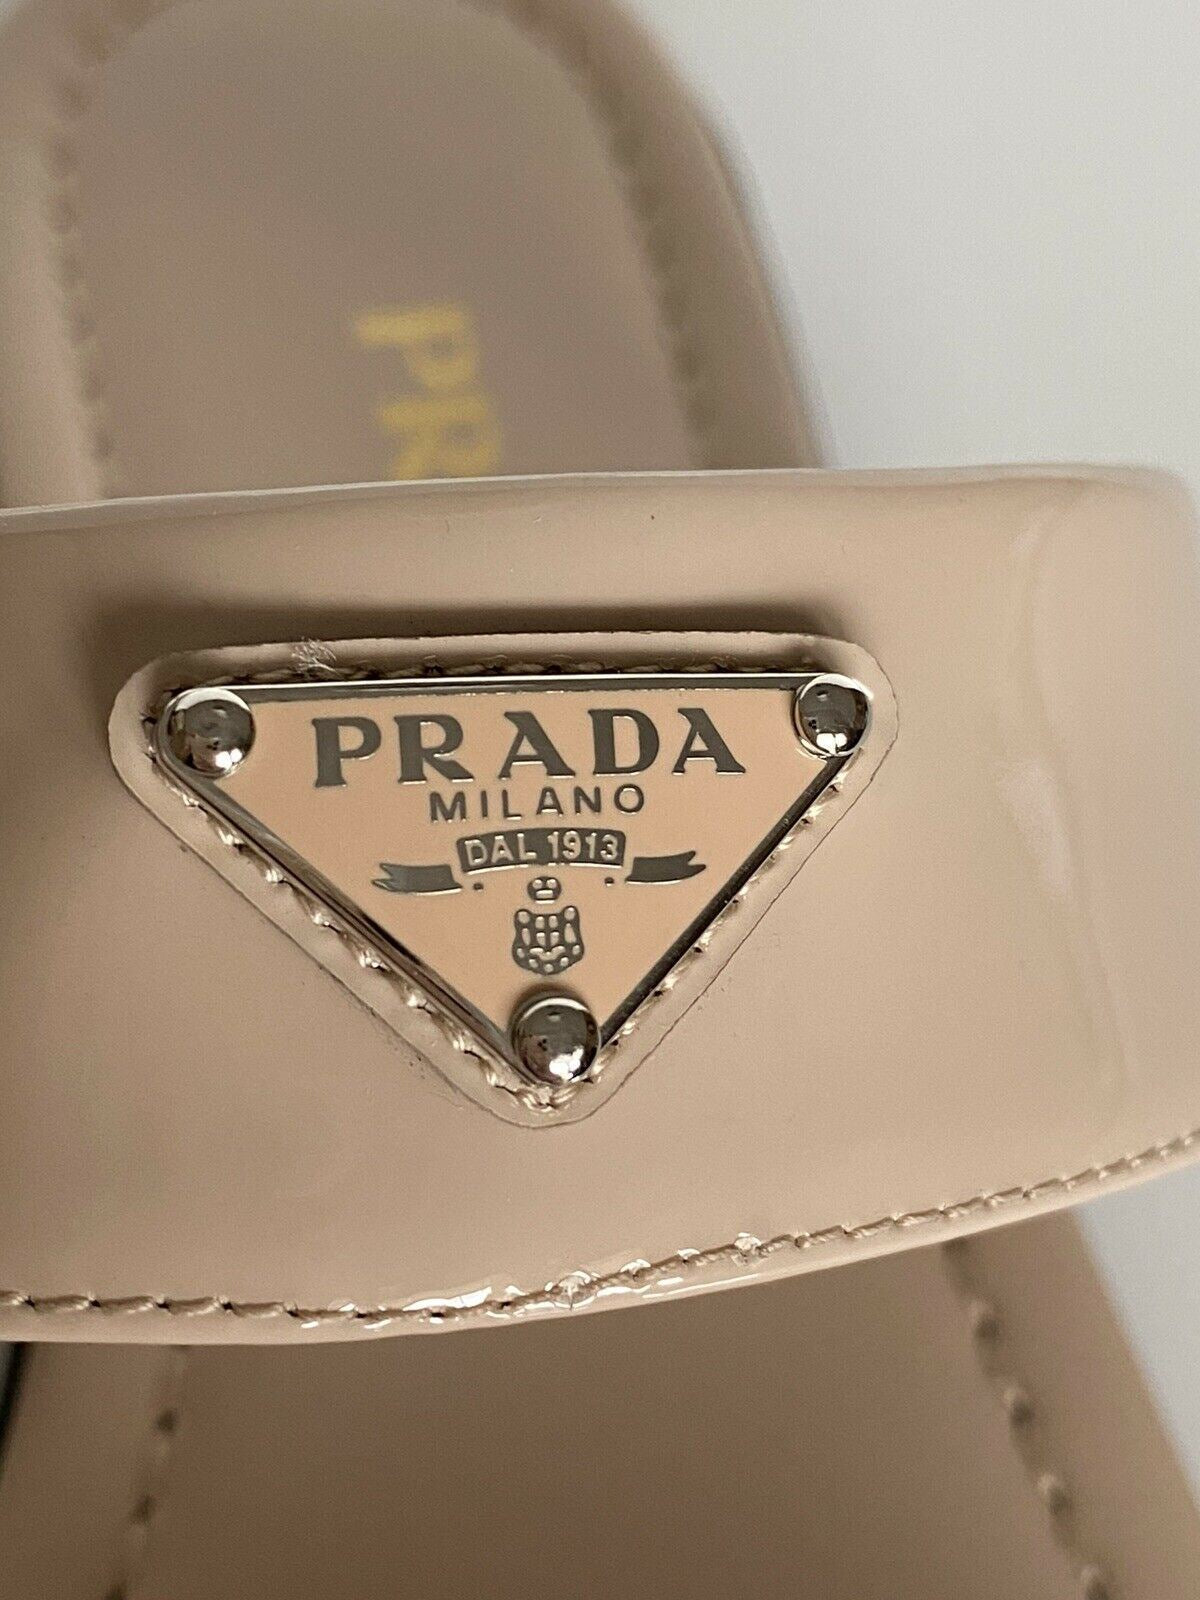 NIB PRADA Women's Beige Open Toe Leather Sandals 9 US (39 Euro) 1X057M